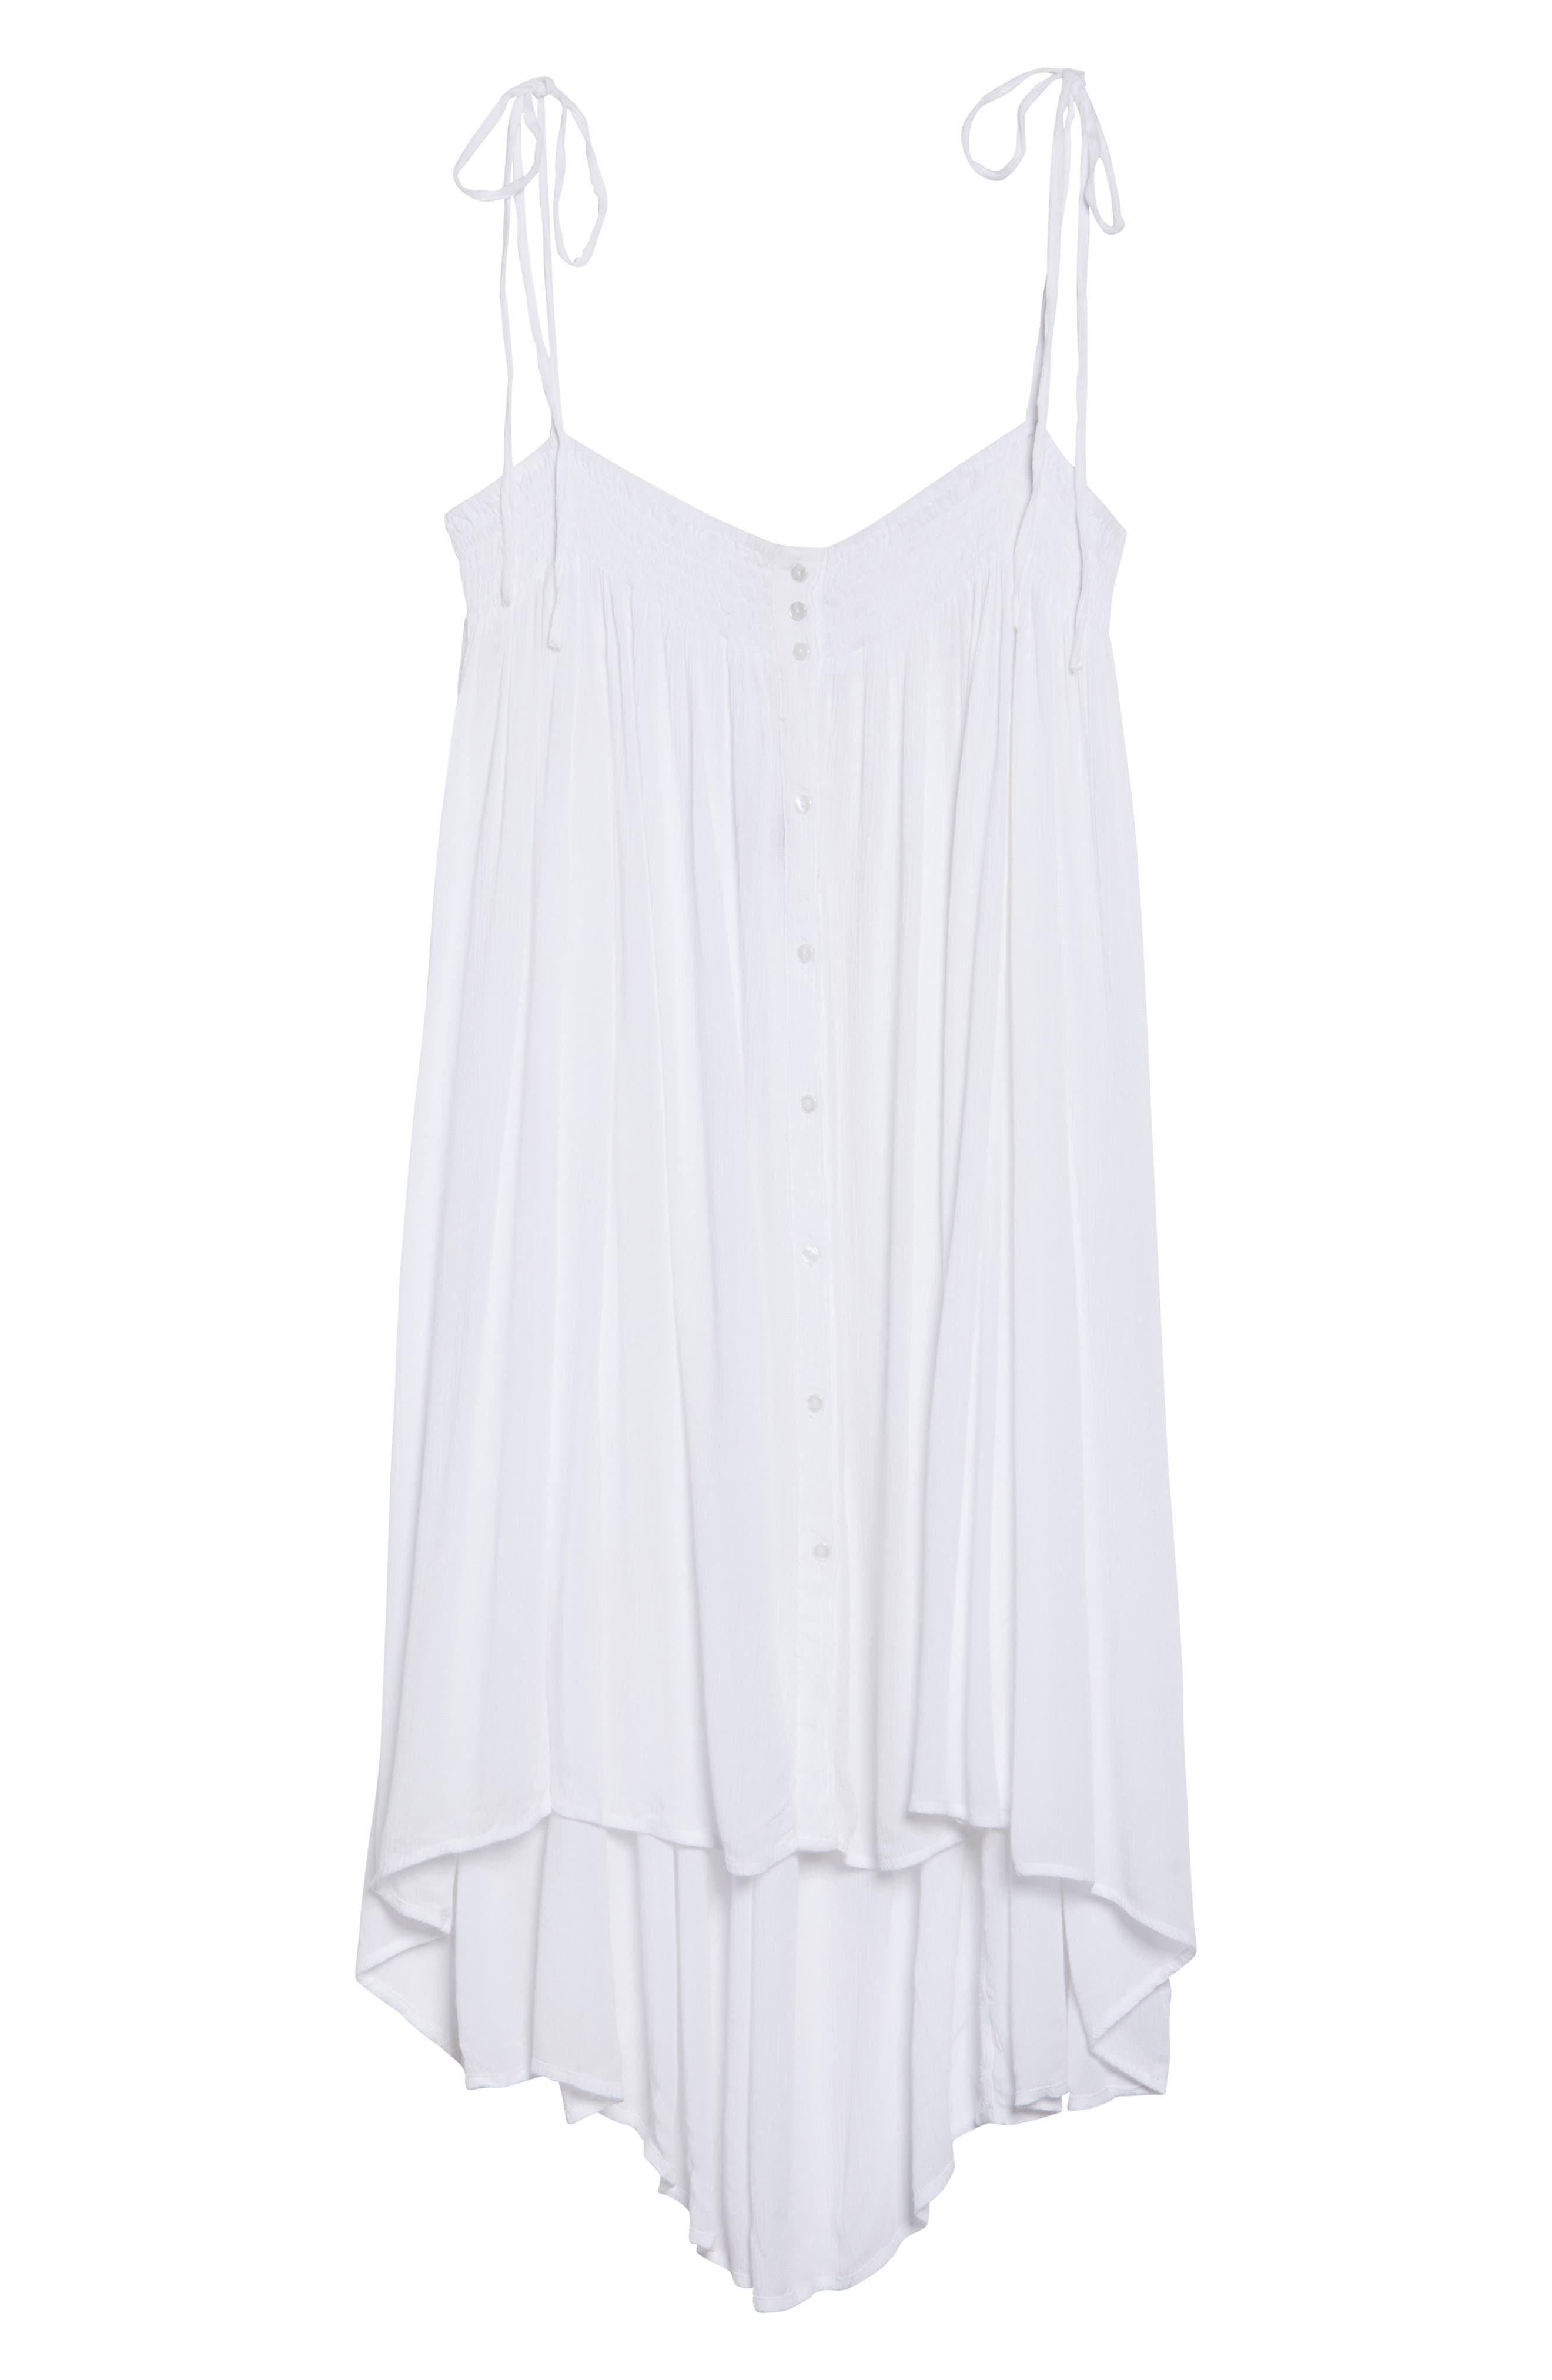 Oliva Cover-Up Dress,                             Alternate thumbnail 6, color,                             White